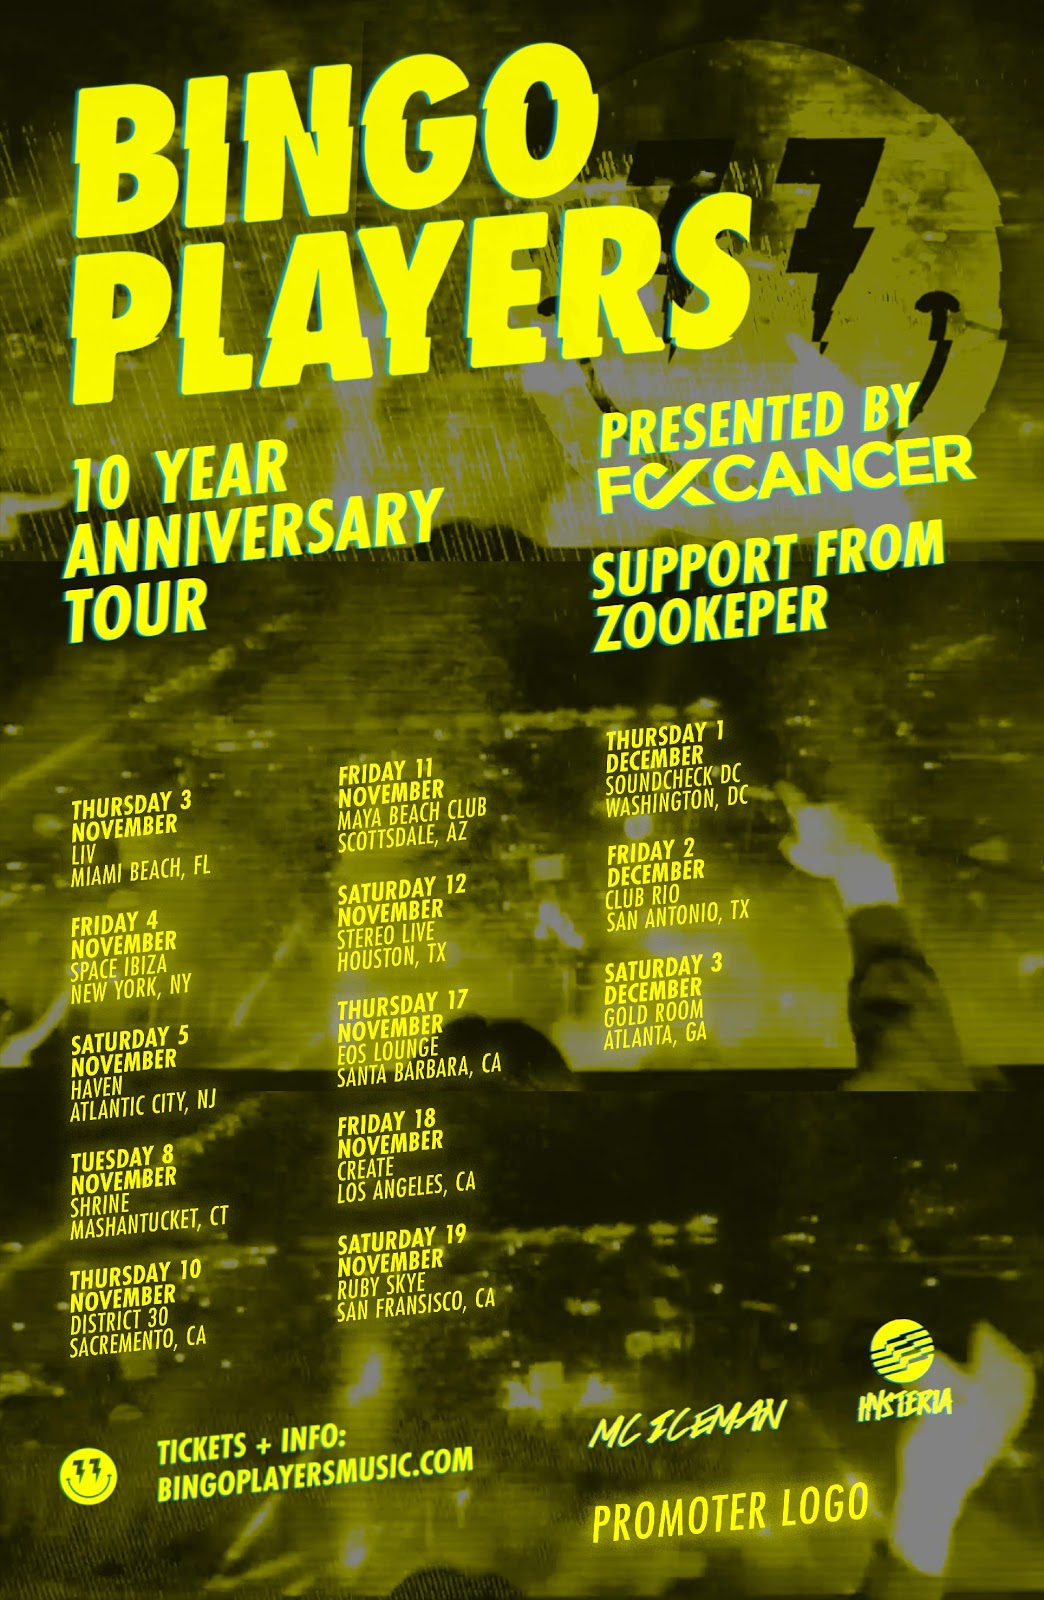 Bingo Players Announces 10 Year Anniversary Tour